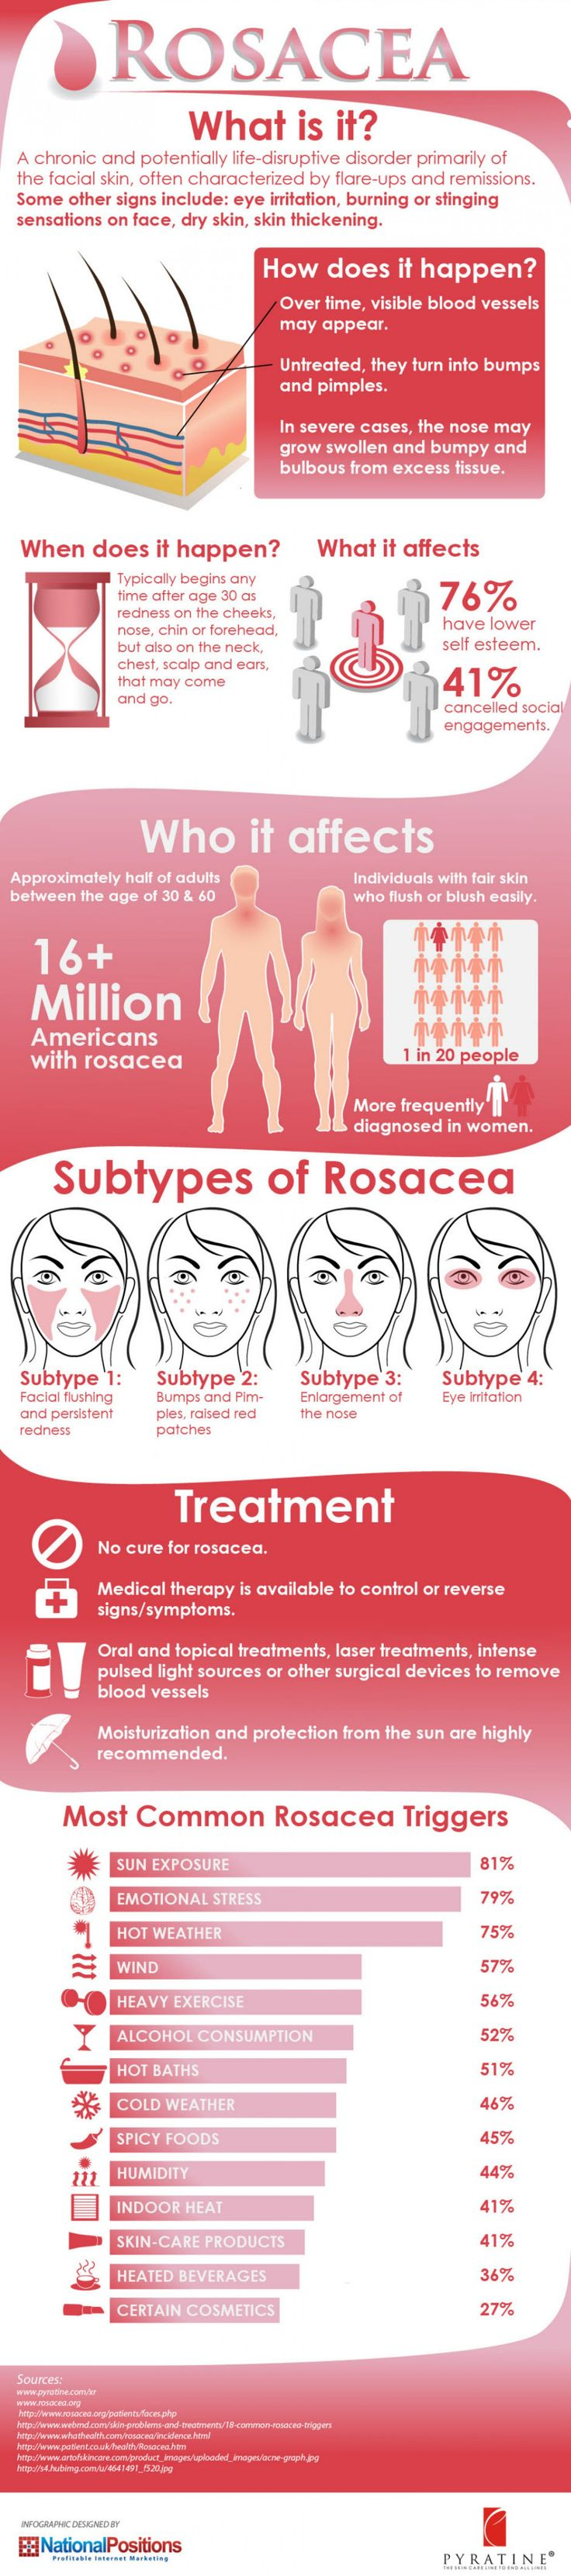 Rosacea is a chronic sensitive skin condition often involving inflammation of the cheeks, nose, chin, and forehead. The skin may experience sensitivity, excessive flushing, persistent redness, broken capillaries or breakouts. Decrease redness/inflammation and increase hydration are key to control Rosacea.